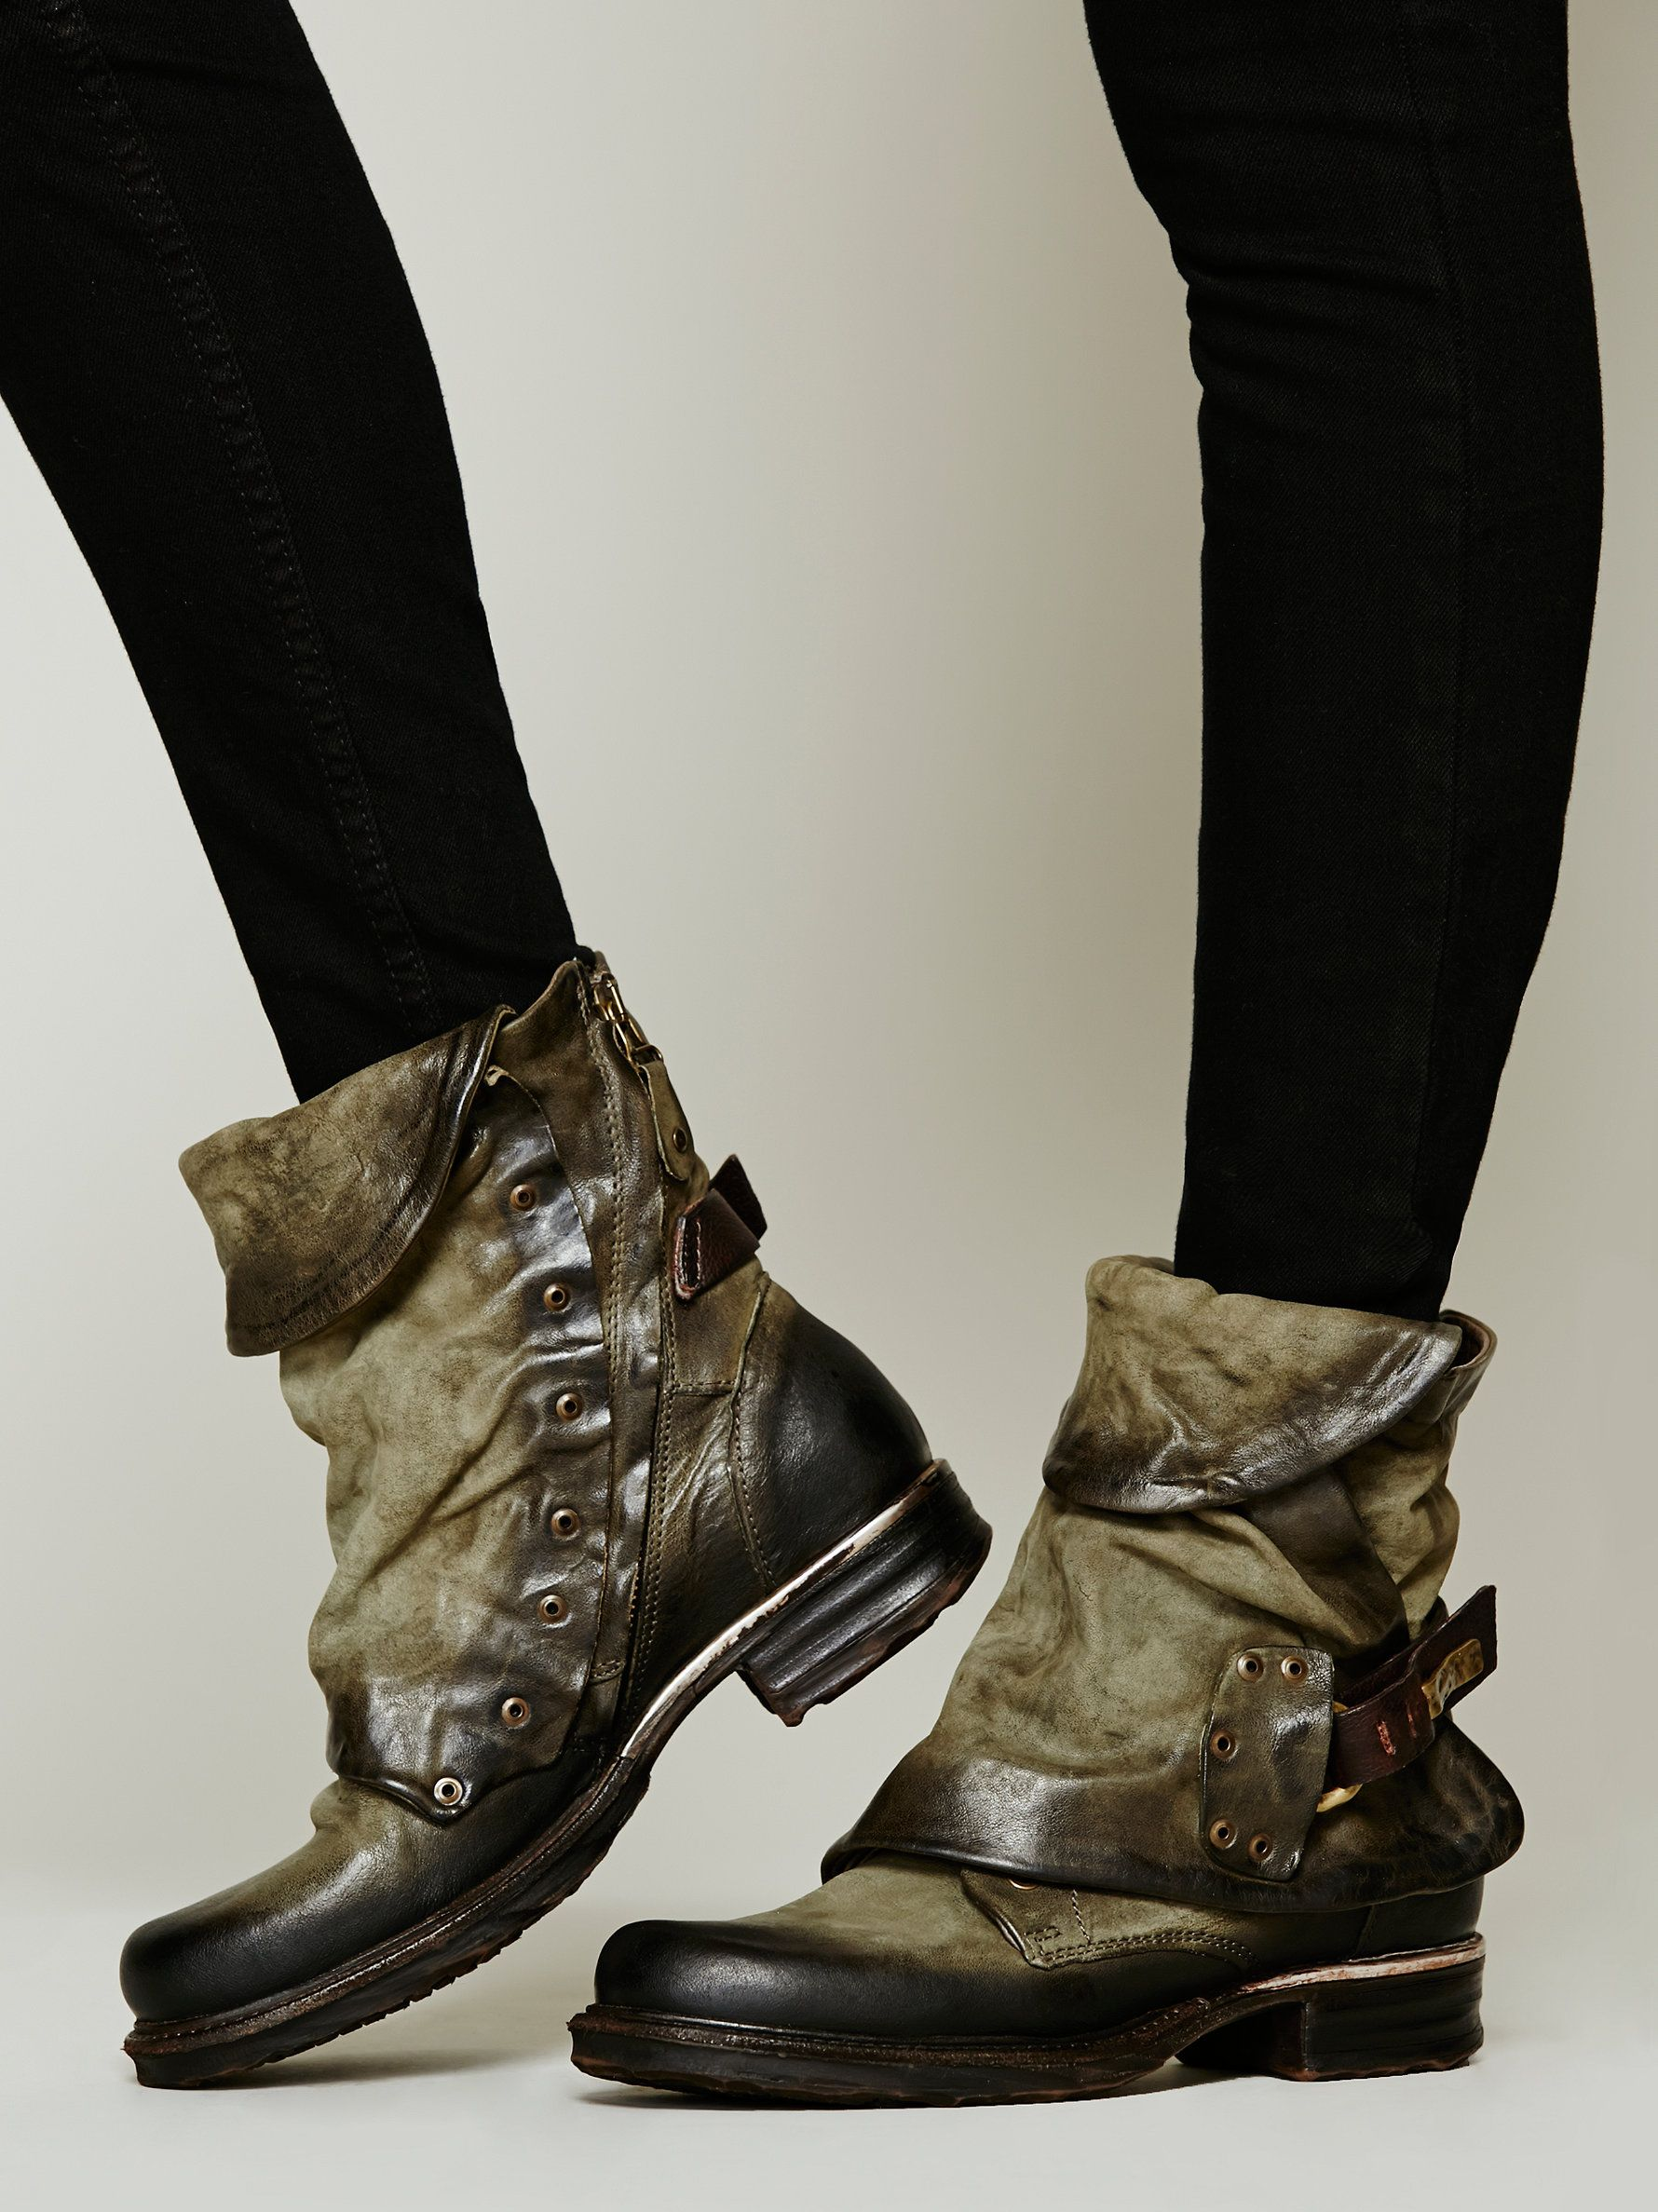 9f8c5b1db9b81 Emerson Ankle Boot   This re-invented work boot by A.S.98. combines  distressed leather, hammered hardware, and a hidden lace-up . Side zipper  and buckle.